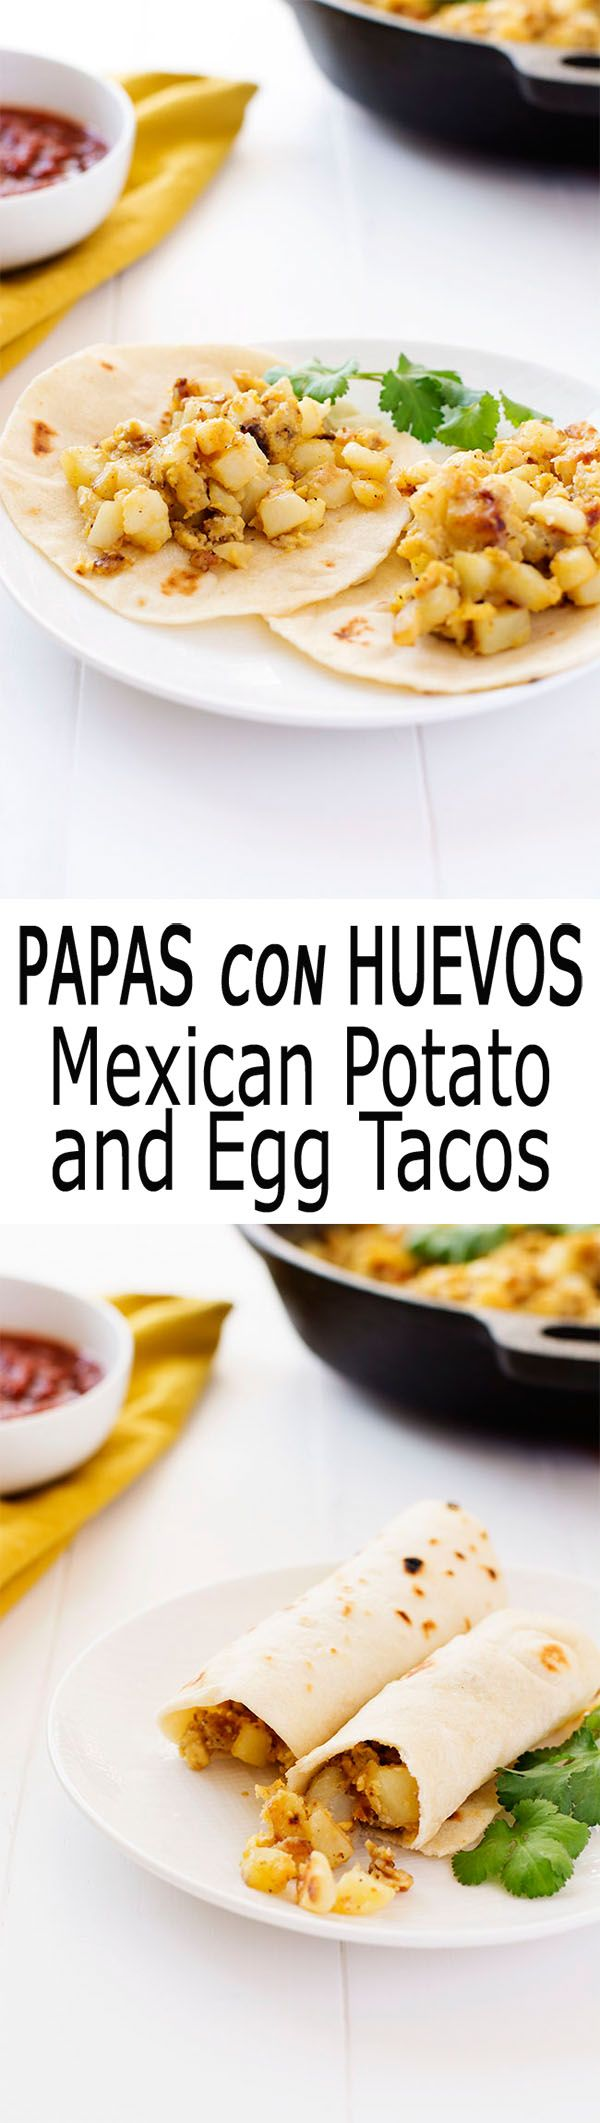 Papas con Huevos is Spanish for potatoes with eggs. Abuela's recipes for the best breakfast tacos! | Kitchen Gidget #SundaySupper